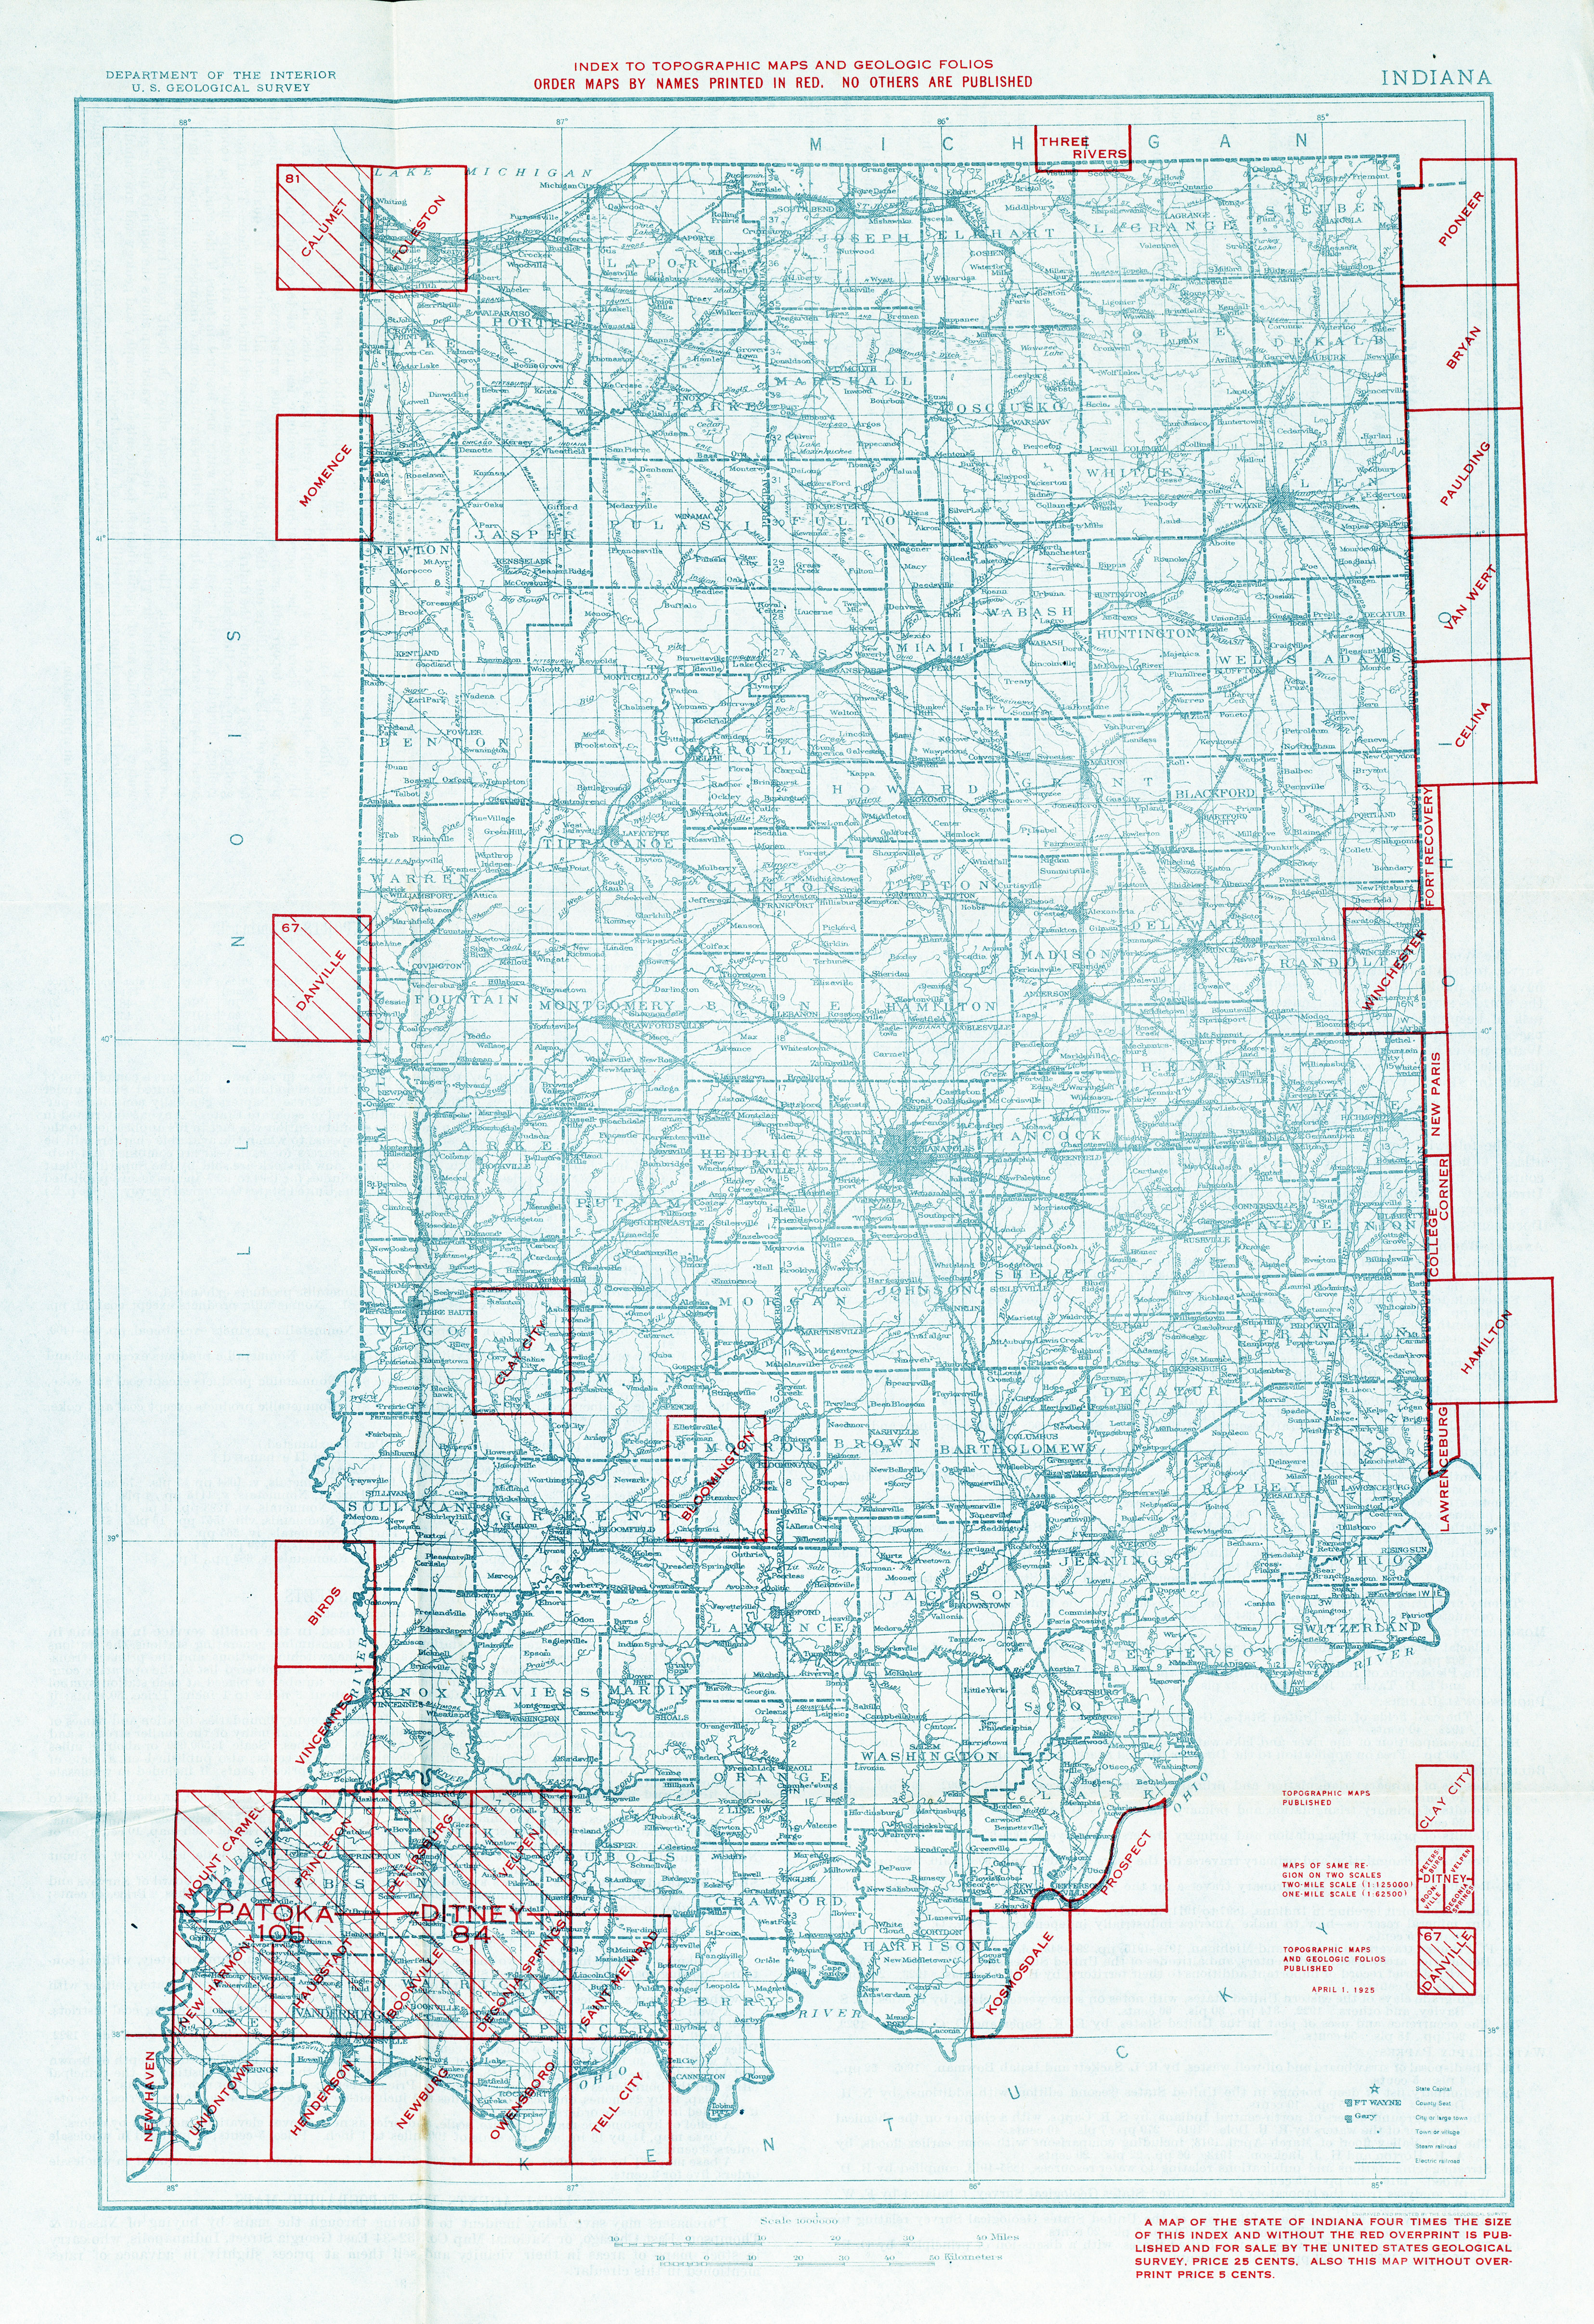 Indiana Historical Topographic Maps - Perry-Castañeda Map Collection ...